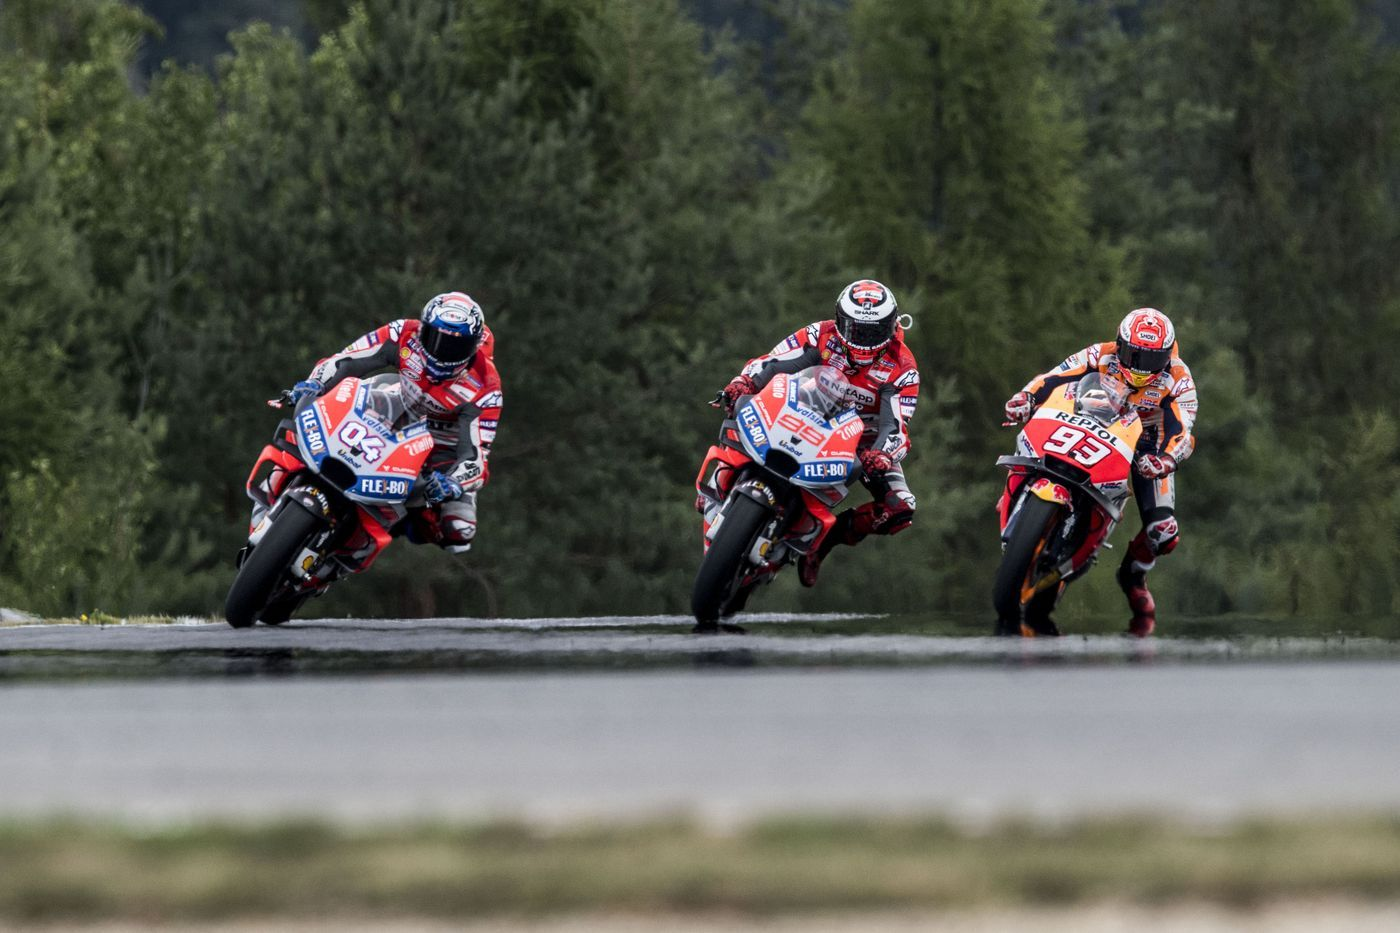 Ducati in the eye of the needle: Dovi and Petrux between Brno and